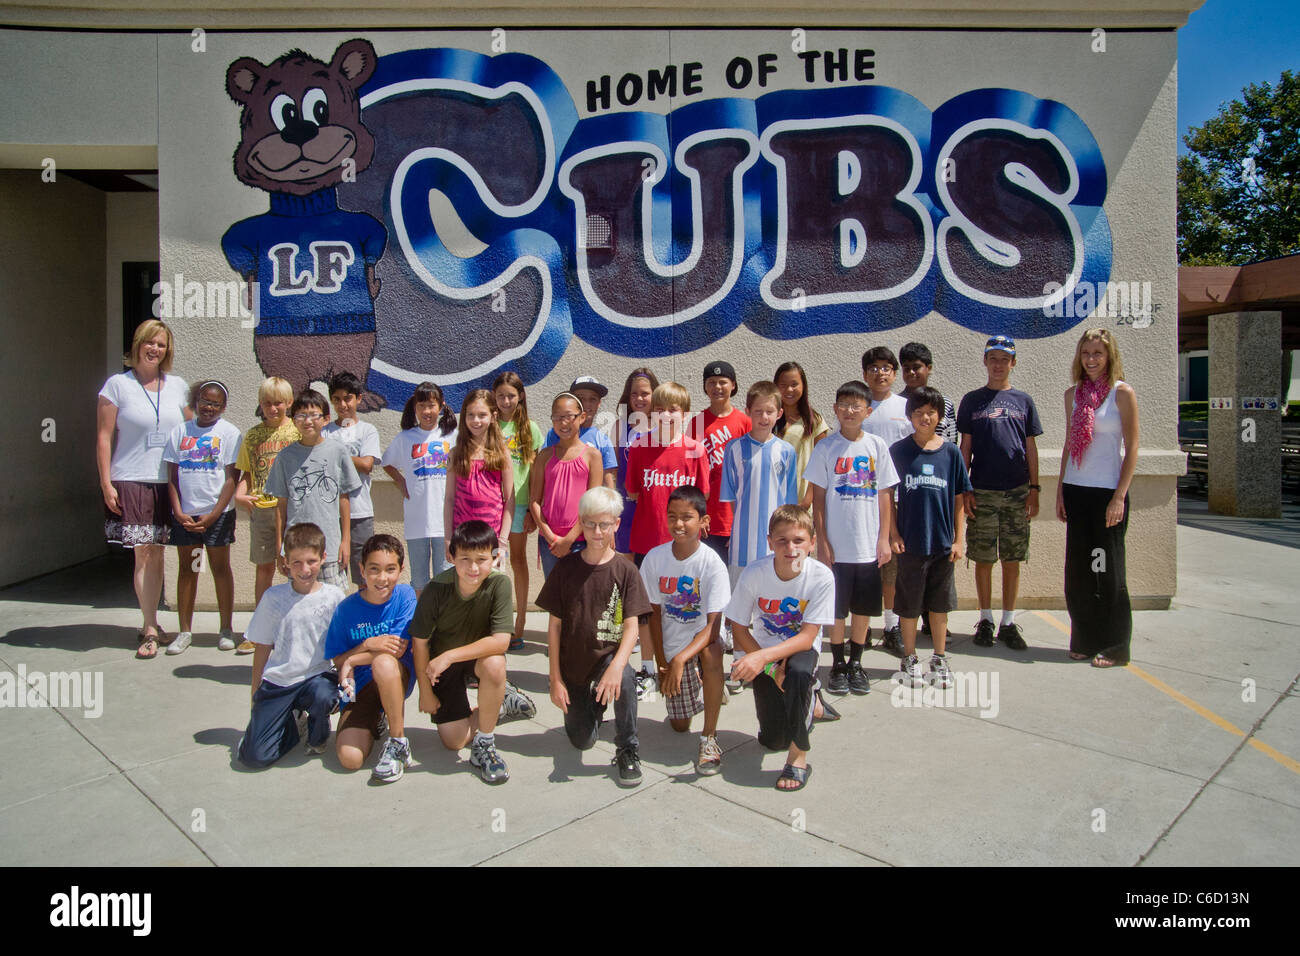 A happy group of students in a college-sponsored summer learning project pose for a group photo before a mural at - Stock Image